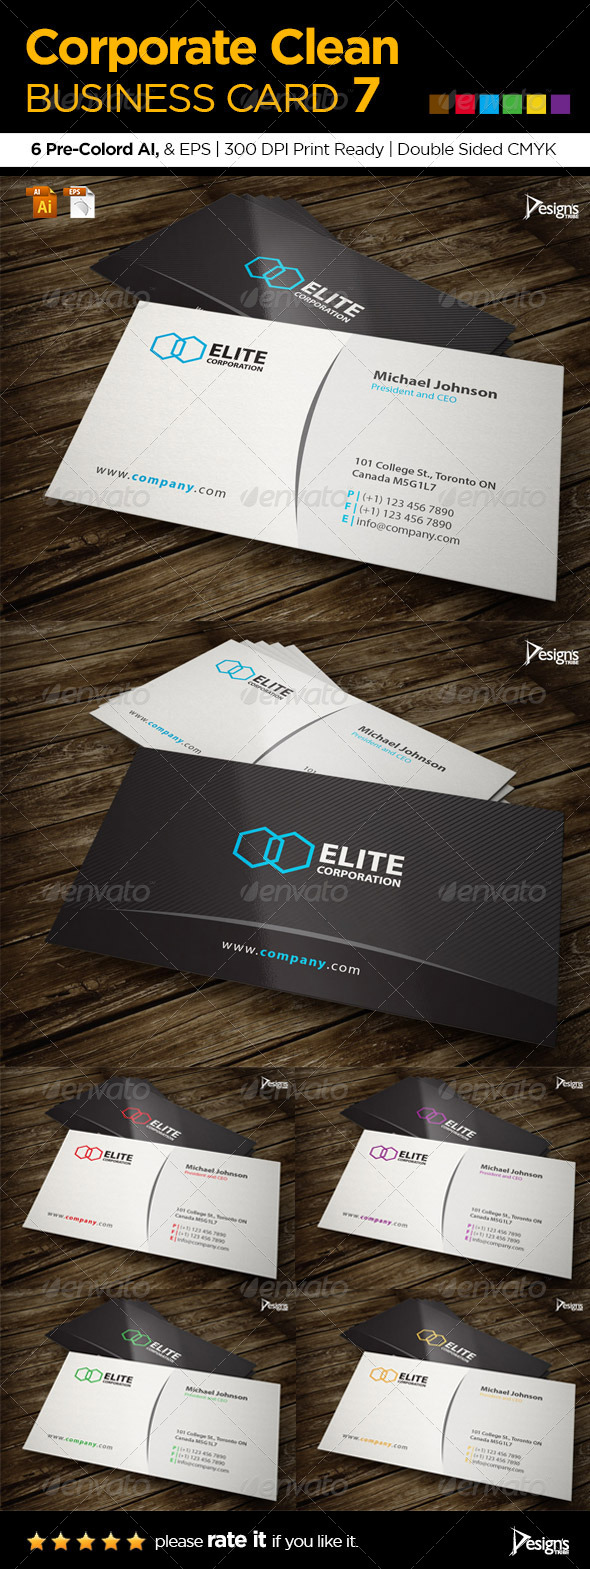 GraphicRiver Corporate Clean Business Card 7 6057550